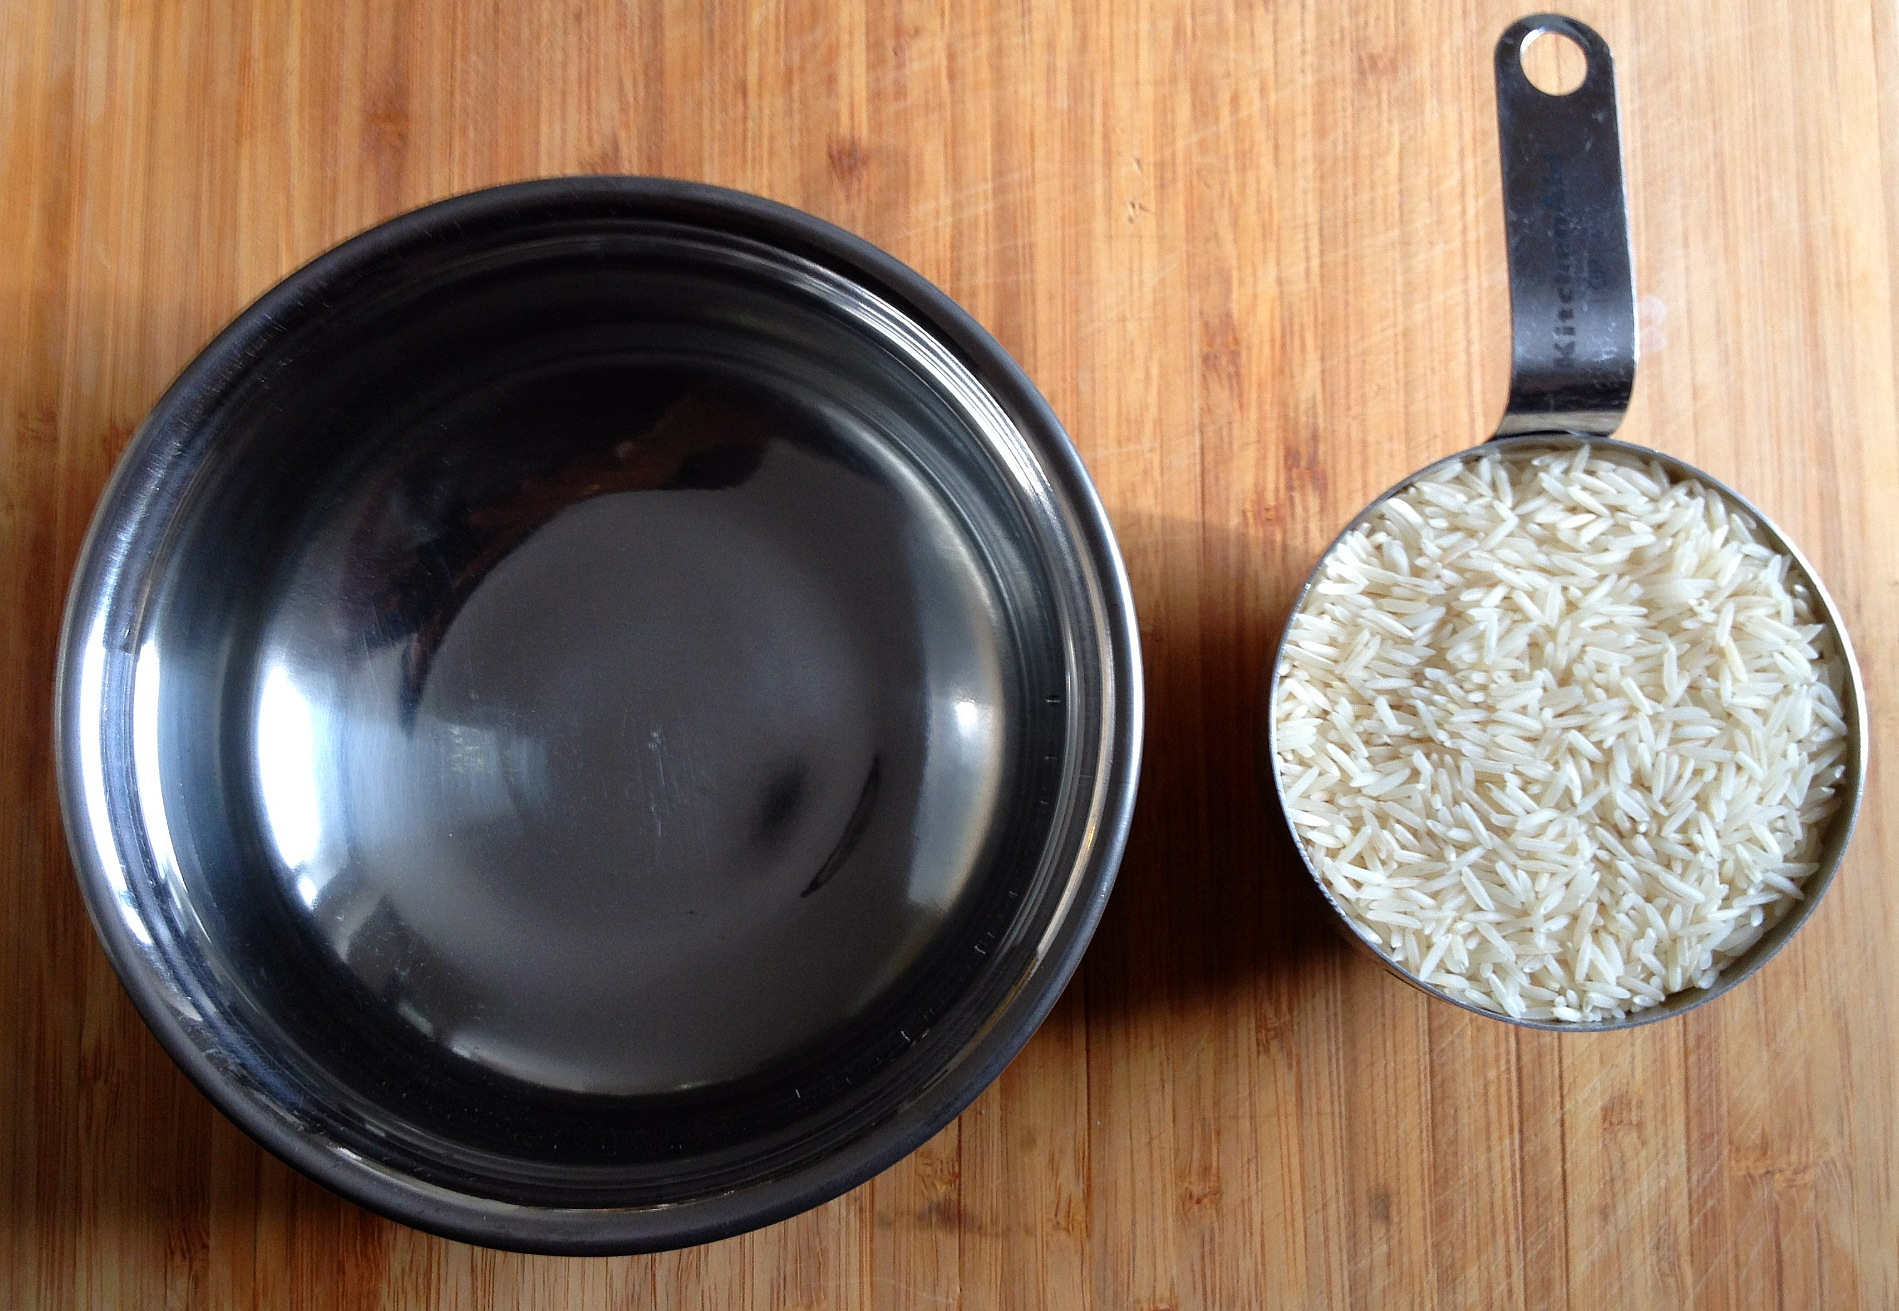 One cup of raw basmati rice and two cups of water